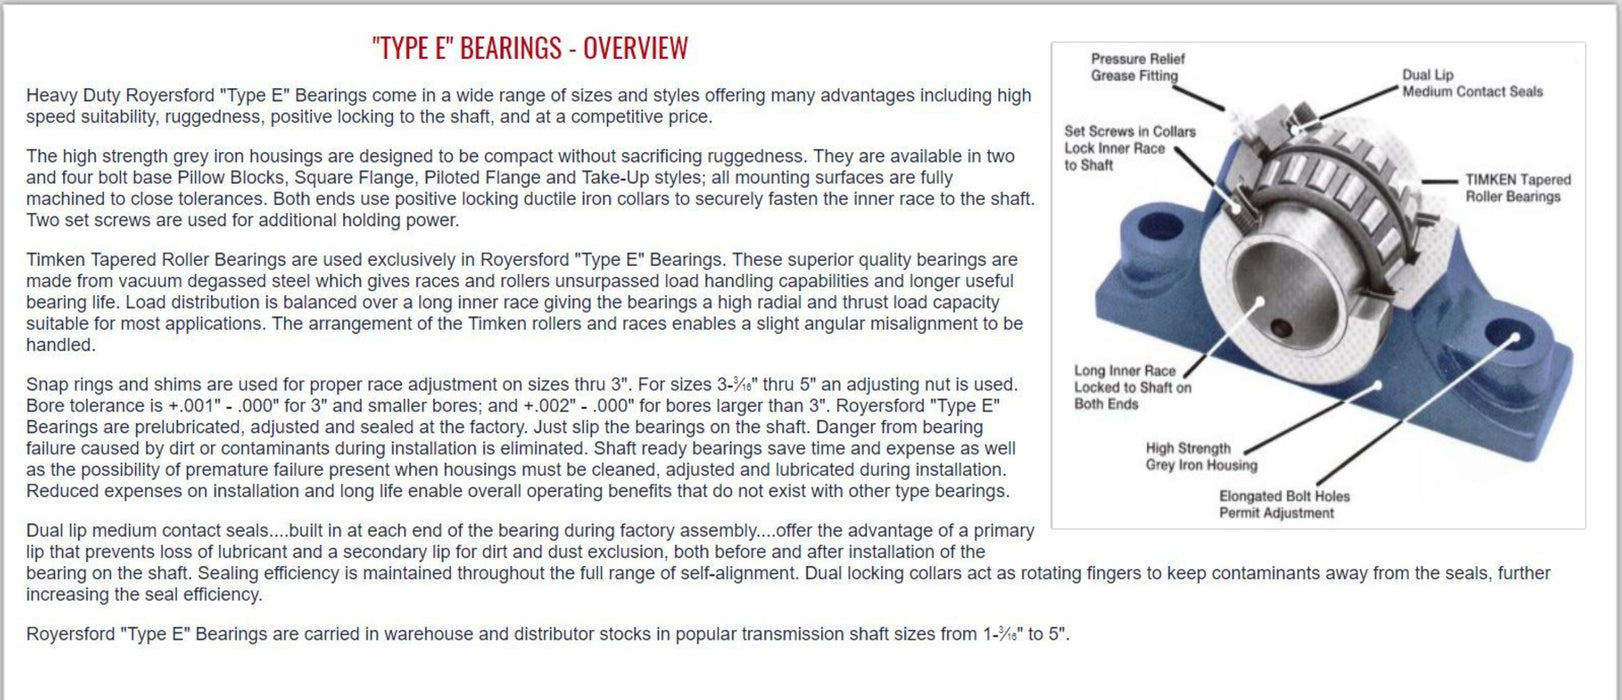 20-05-0112, ROYERSFORD TYPE E 4 Bolt Square Flange Bearing, 1-3/4 with Timken Tapered Roller Bearings